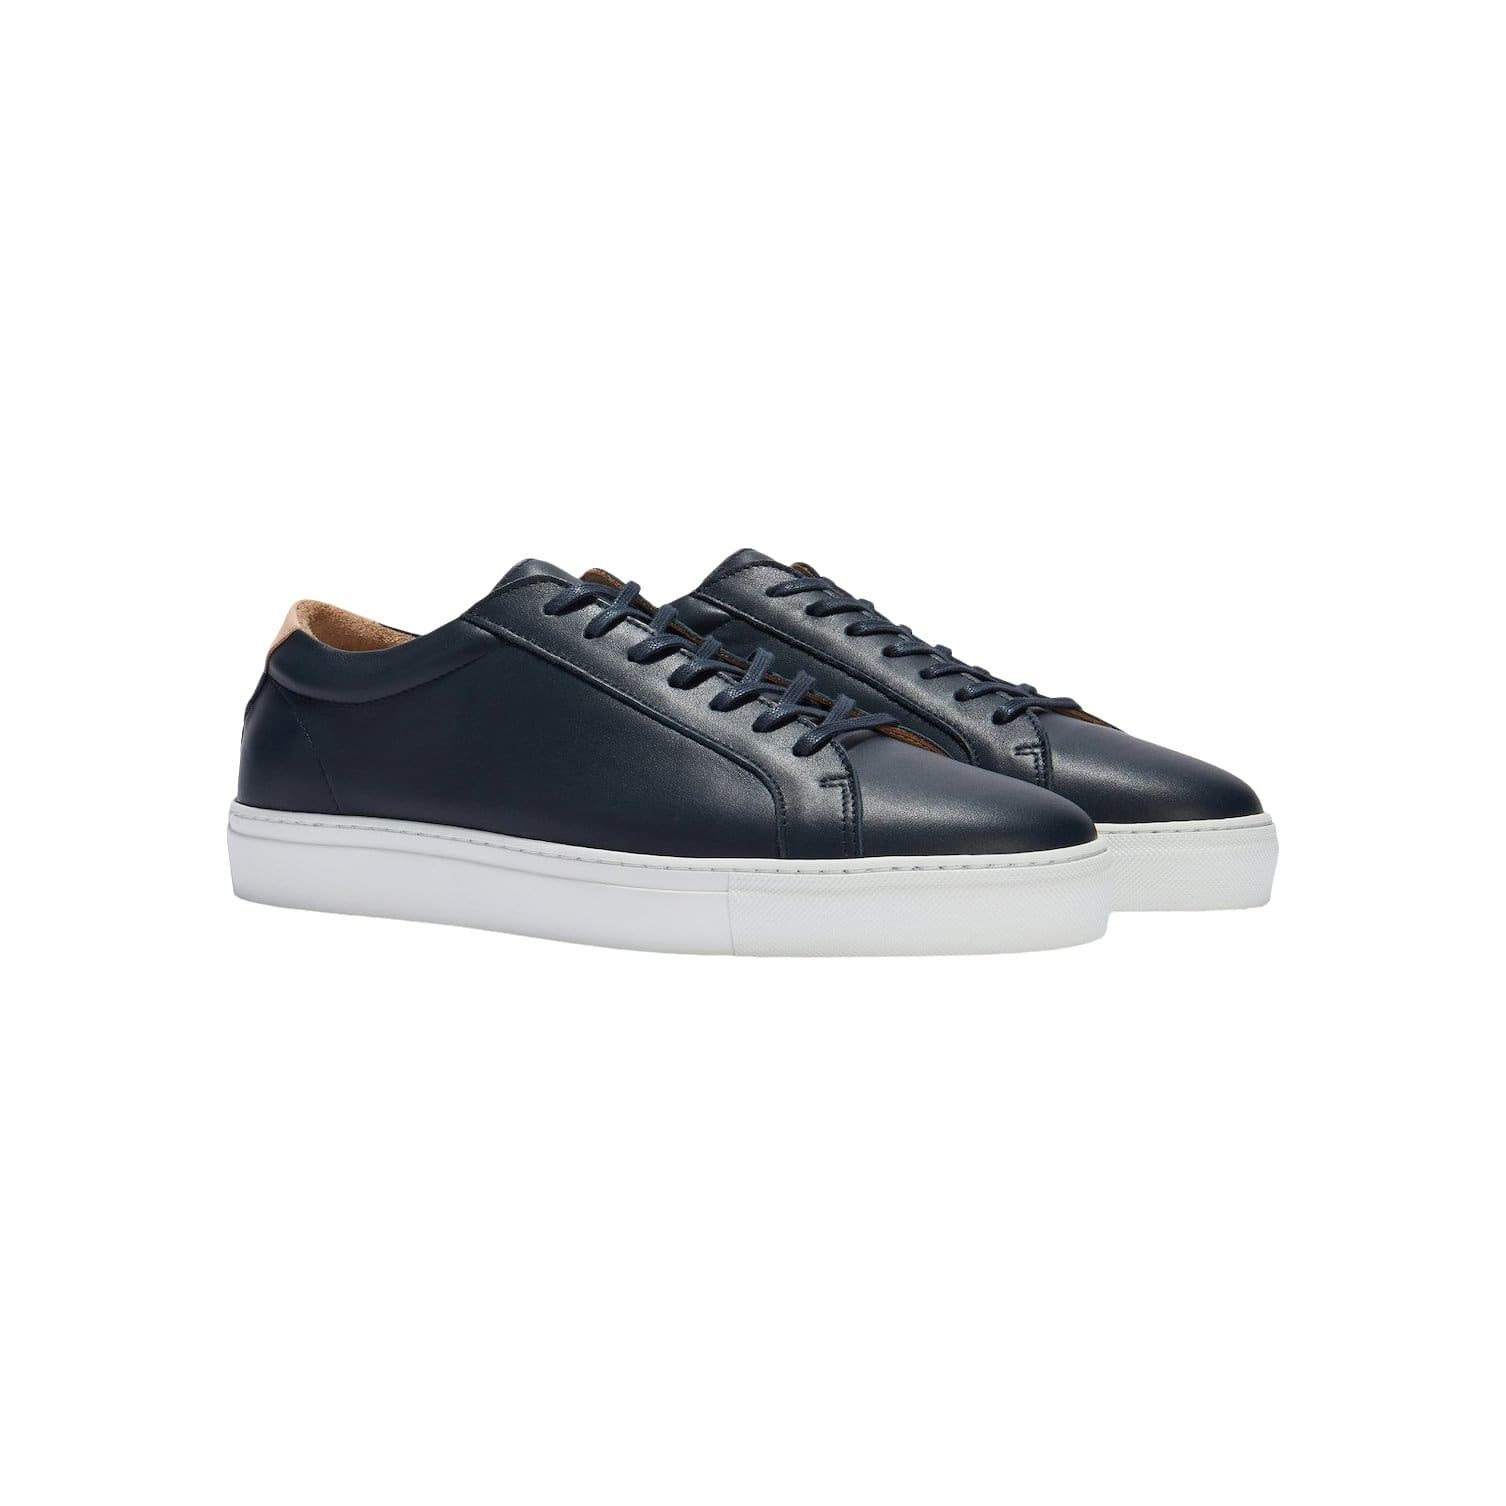 UNIFORM STANDARD SERIES 1 Series 1 Navy Leather Sneaker